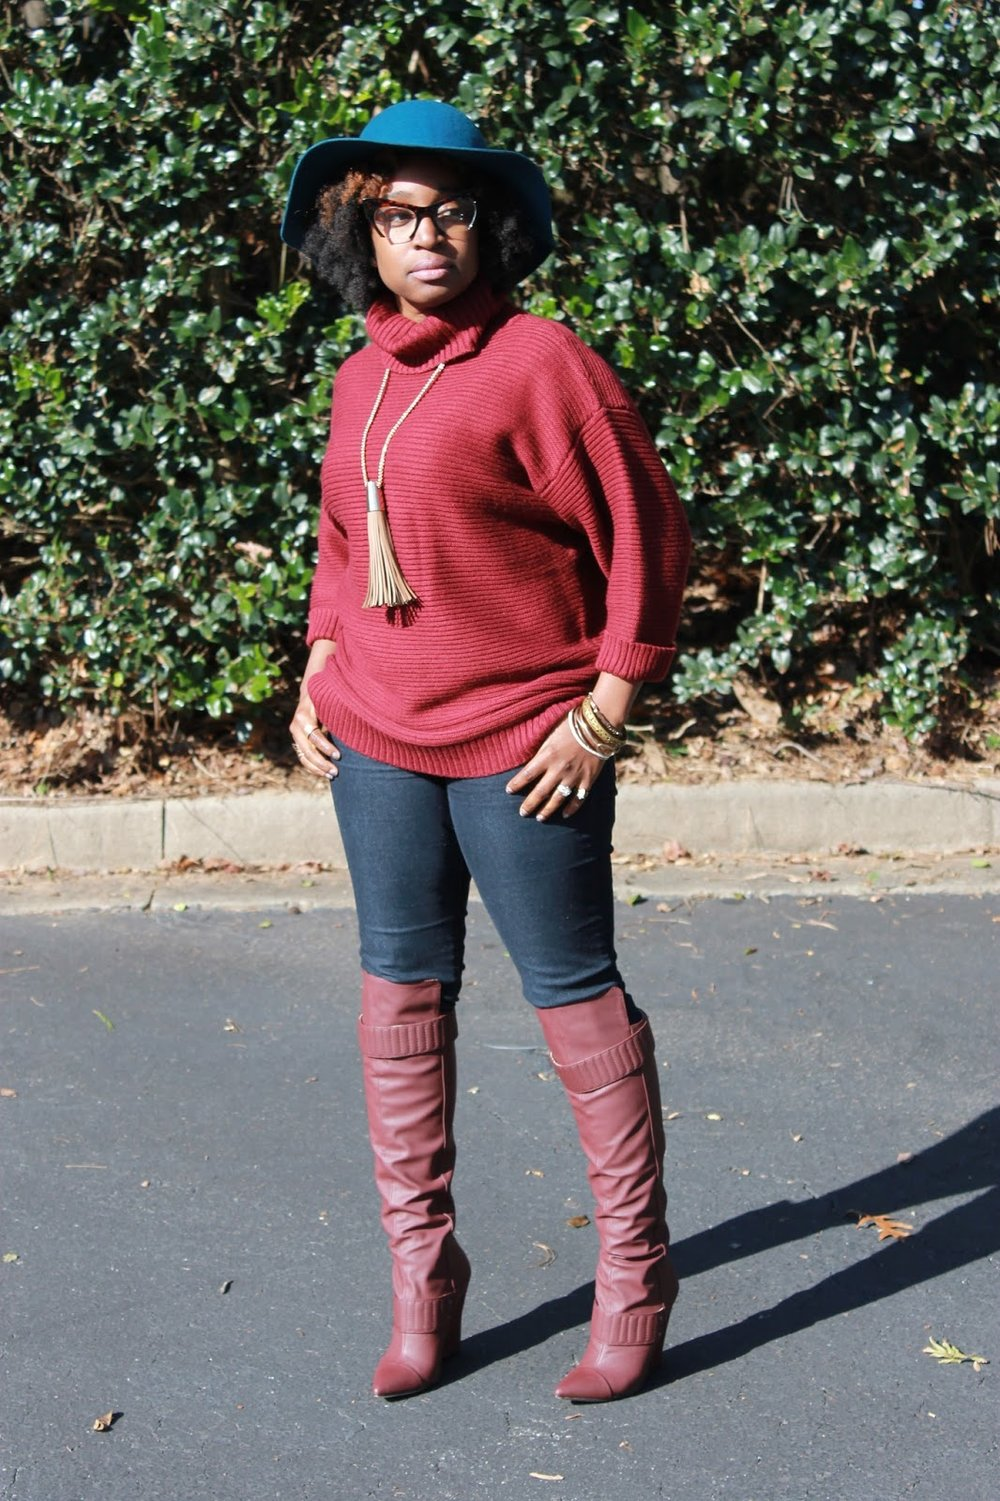 Atlanta blogger, style blogger, Atlanta style blogger, Black girls killing it, Burgundy boots, Bordeaux sweater, ShoeDazzle, Turquoise Hat, winter wear, street style, fringe necklace, oversized handbags, floppy hat, over the knee boots